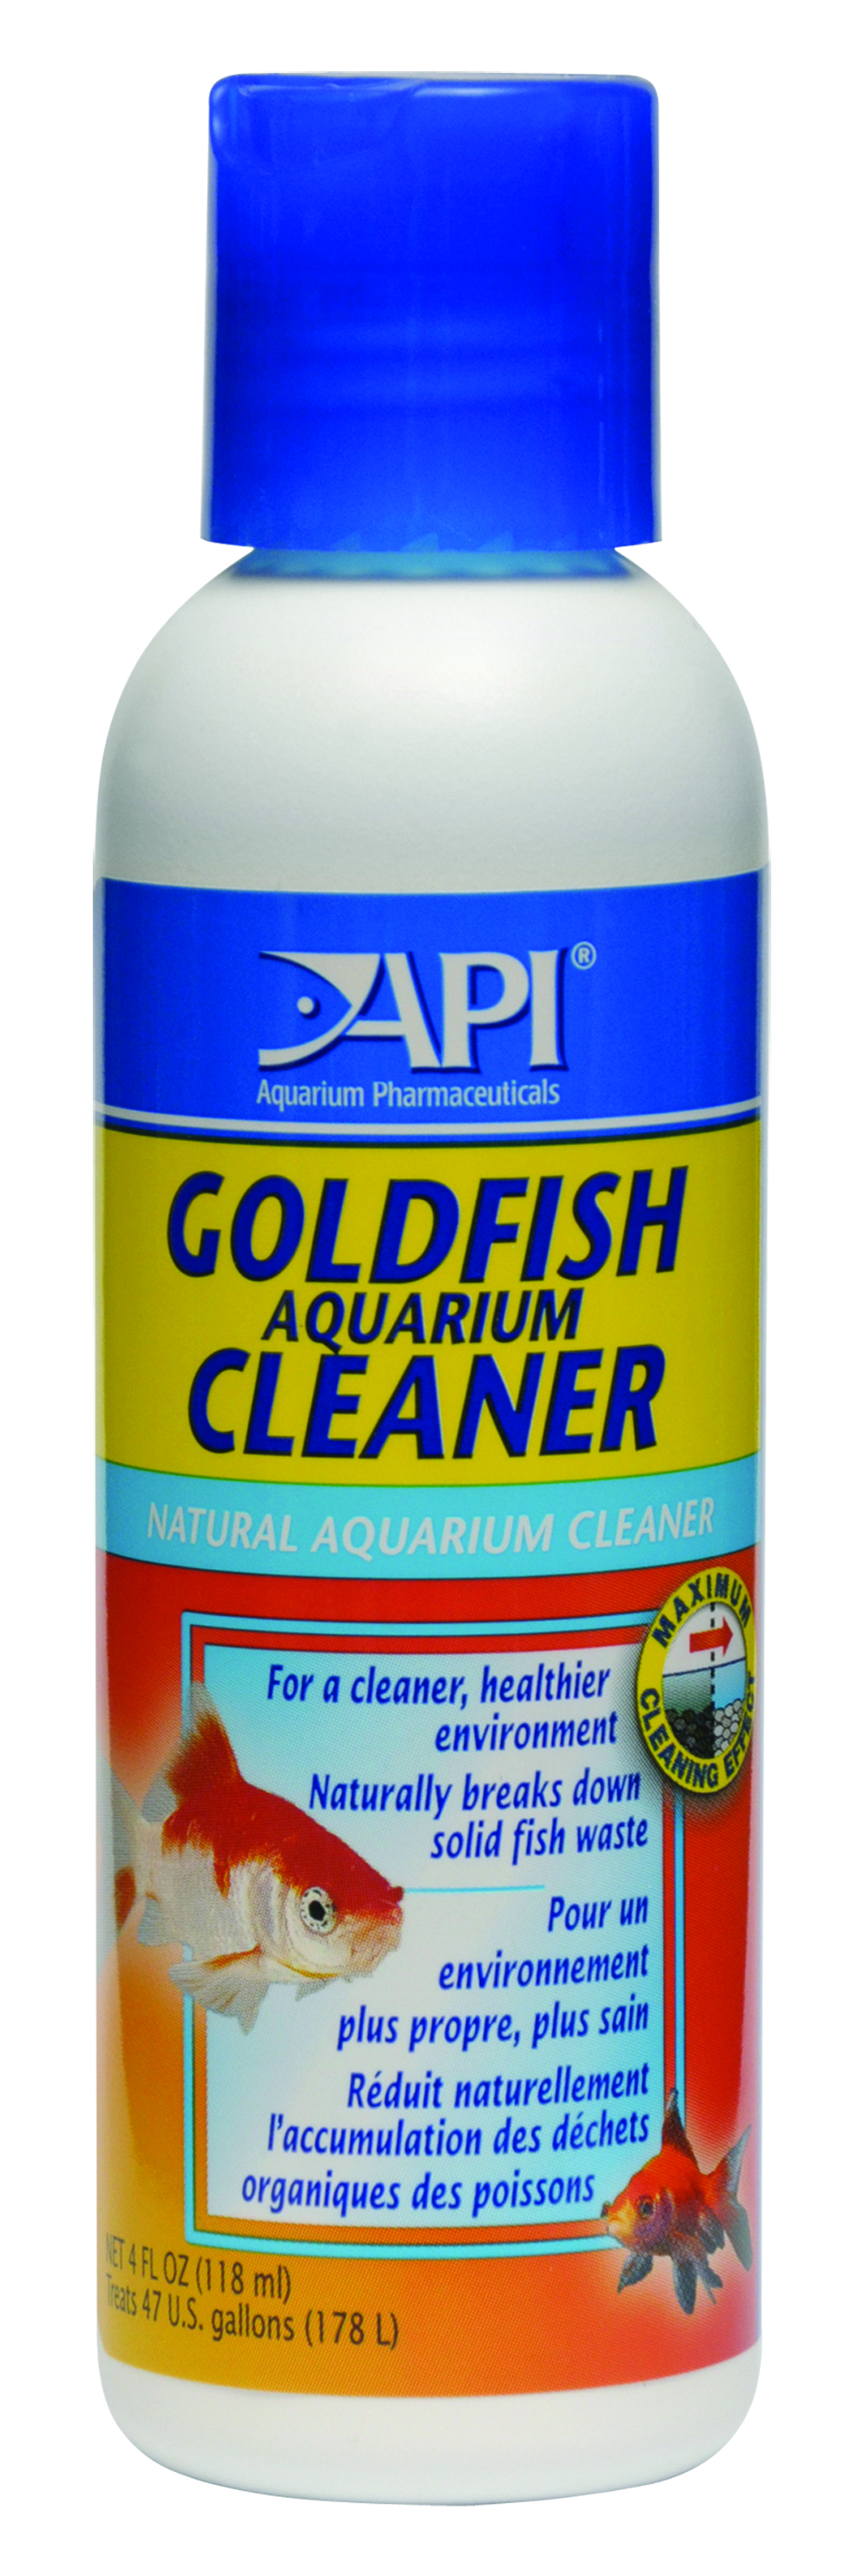 API GOLDFISH AQUARIUM CLEANER